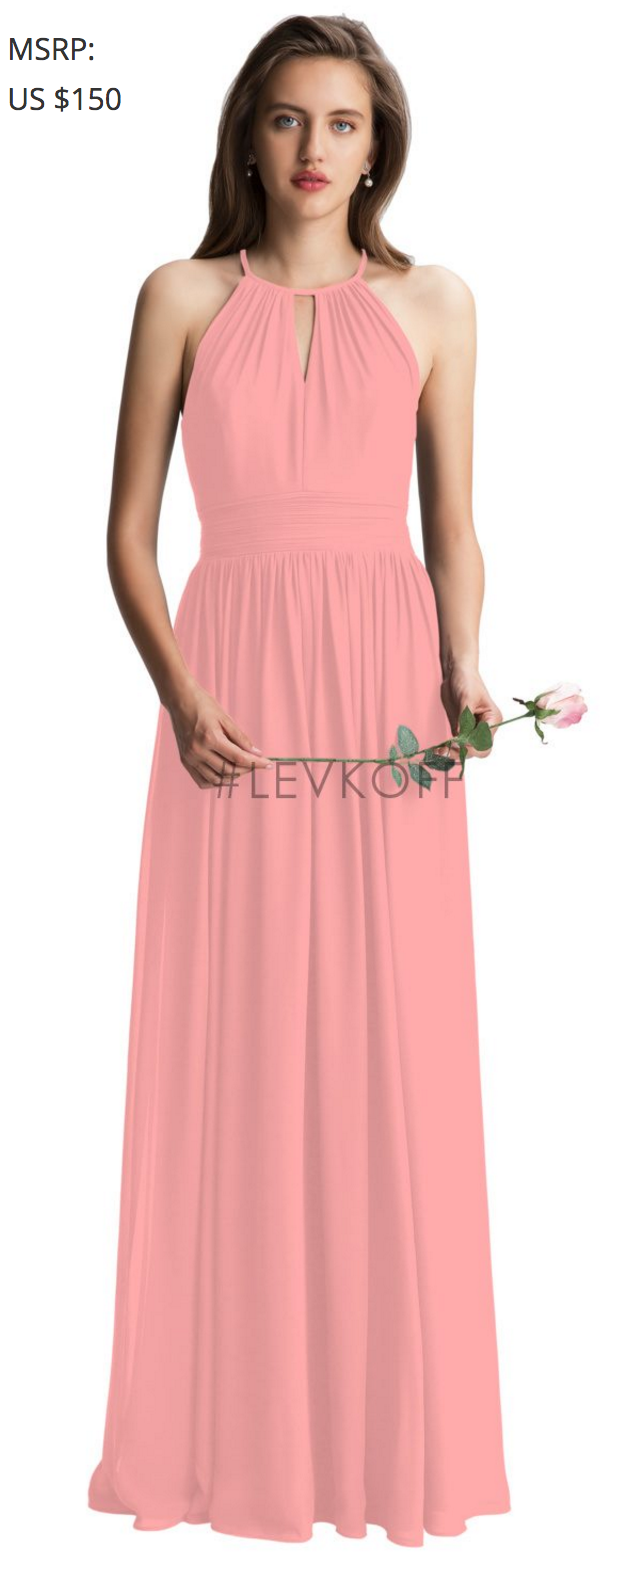 60aacad04f42 Levkoff 7002 Coral $150   dresses we saw in person   Pinterest